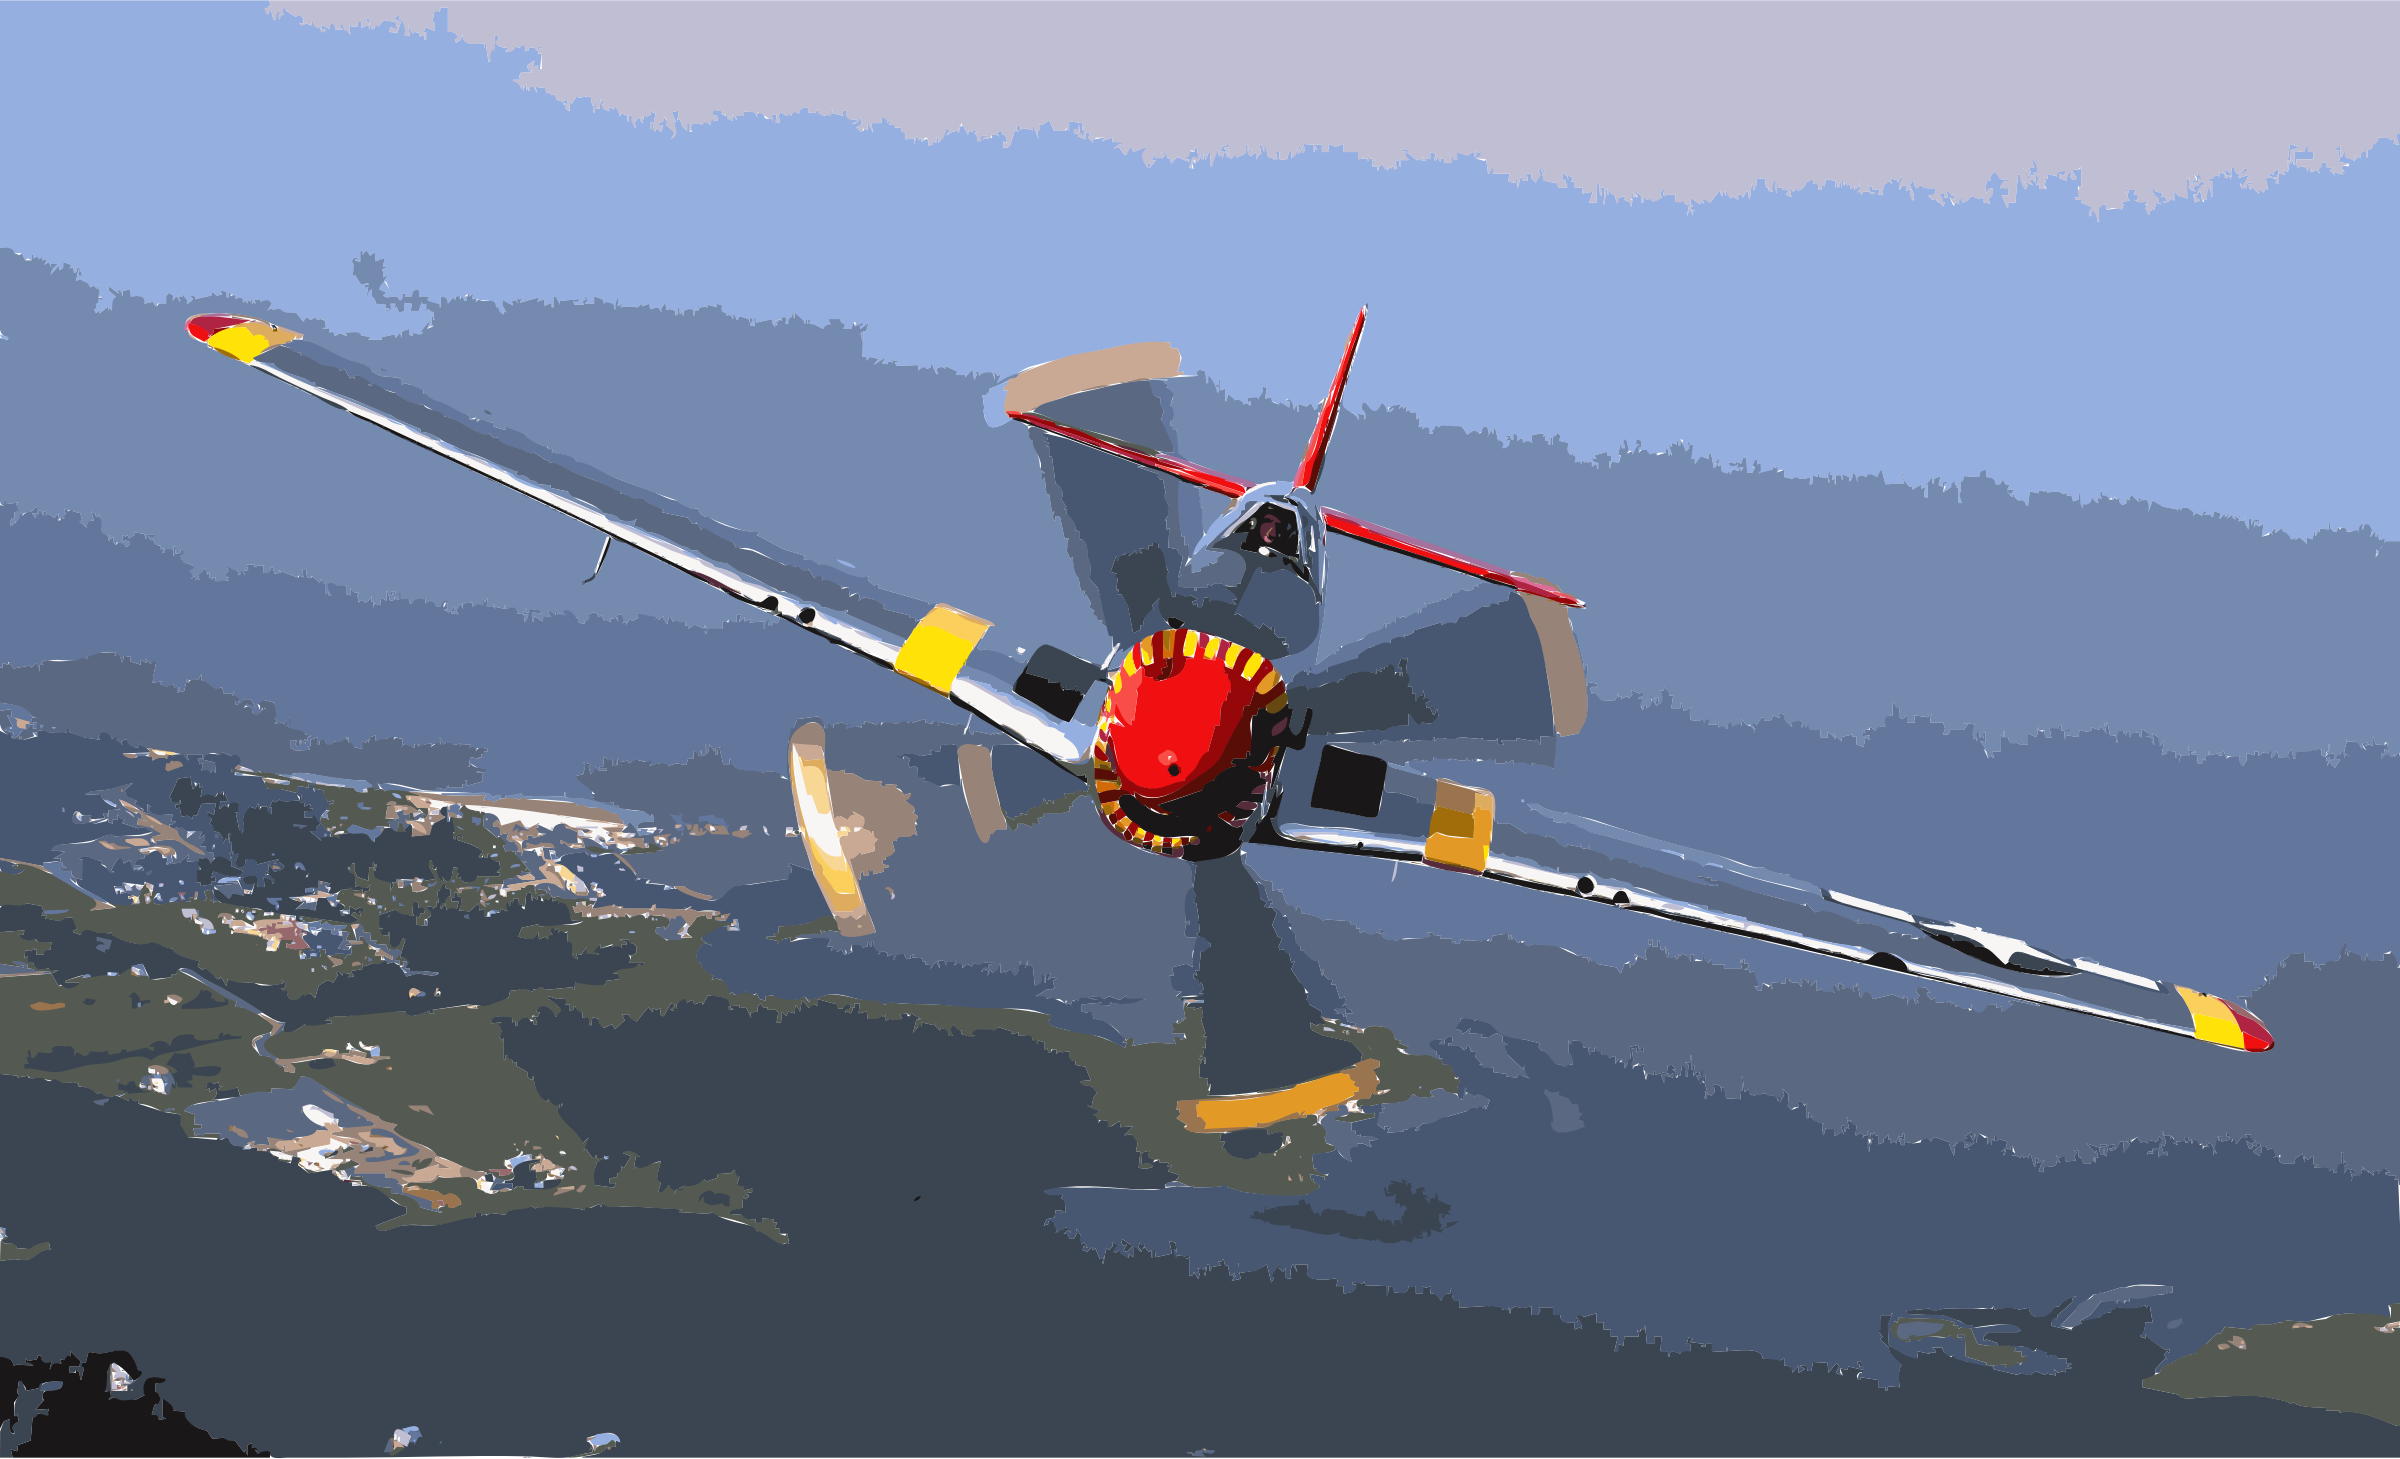 P-51 Mustang edit1 by 3wezo5+6ee0503pz7bvs